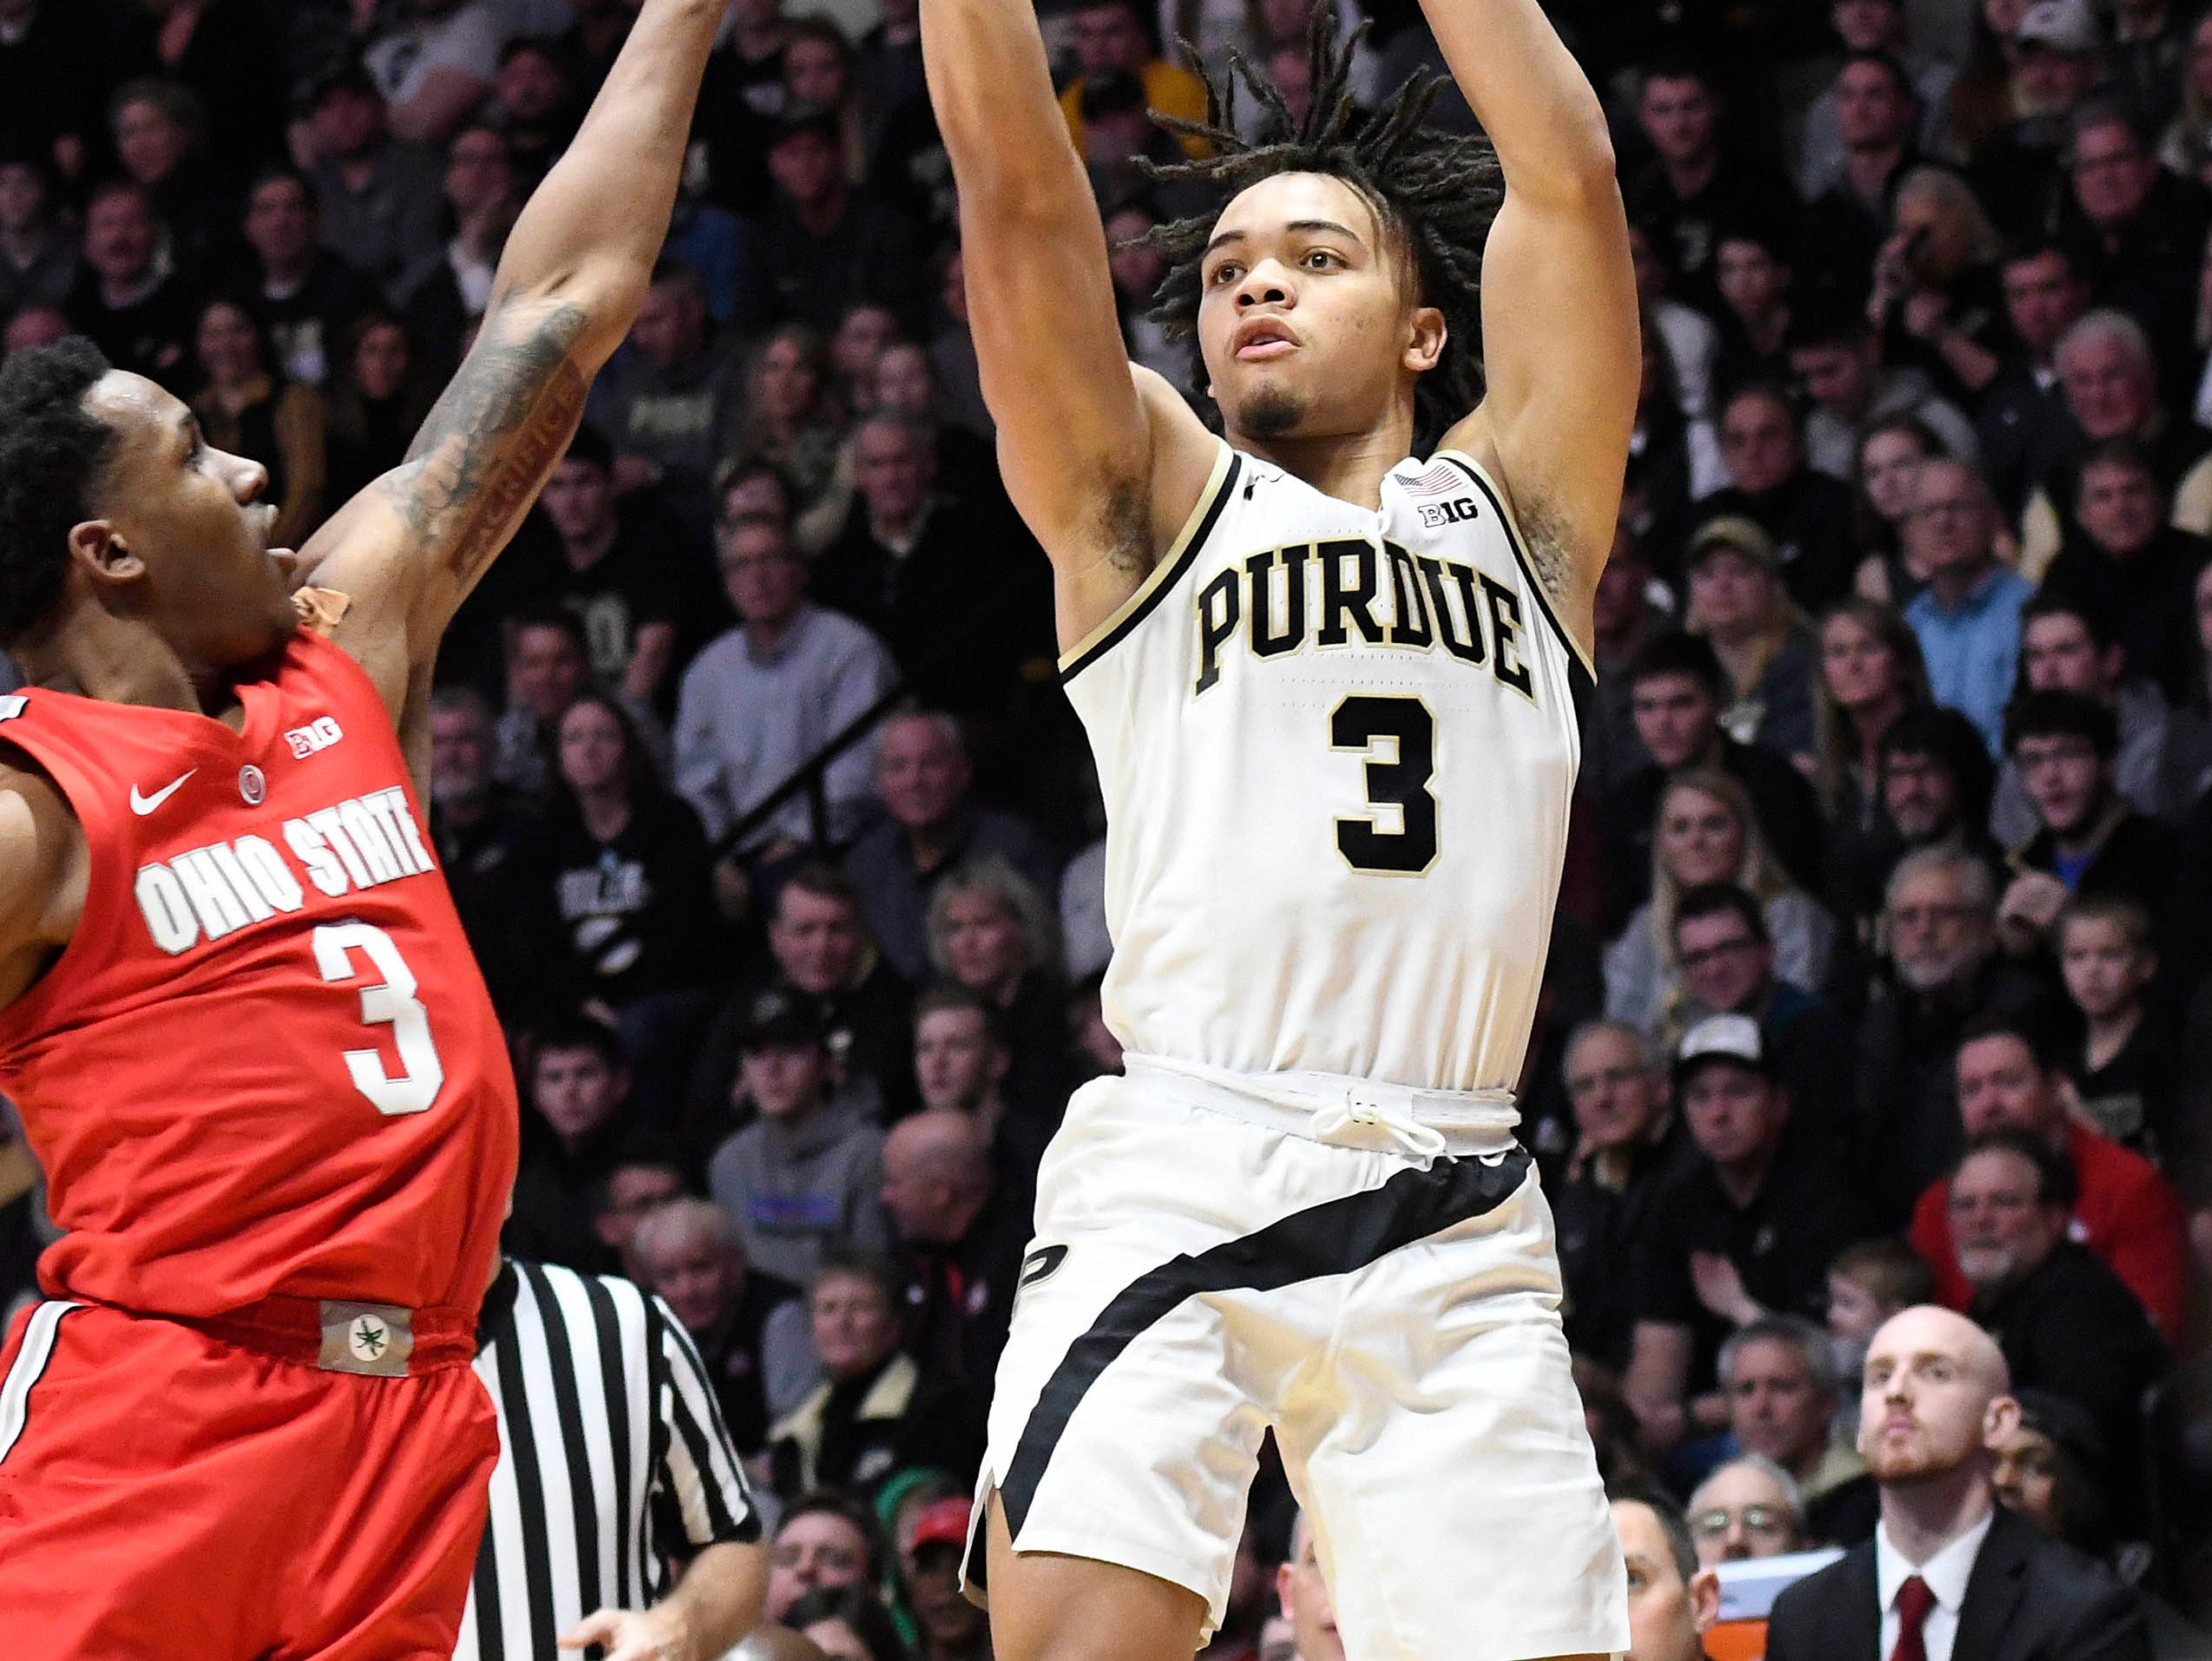 Mar 2, 2019; West Lafayette, IN, USA; Purdue Boilermakers guard Carsen Edwards (3) fires a shot over Ohio State Buckeye guard CJ Jackson in the first half at Mackey Arena. Mandatory Credit: Sandra Dukes-USA TODAY Sports